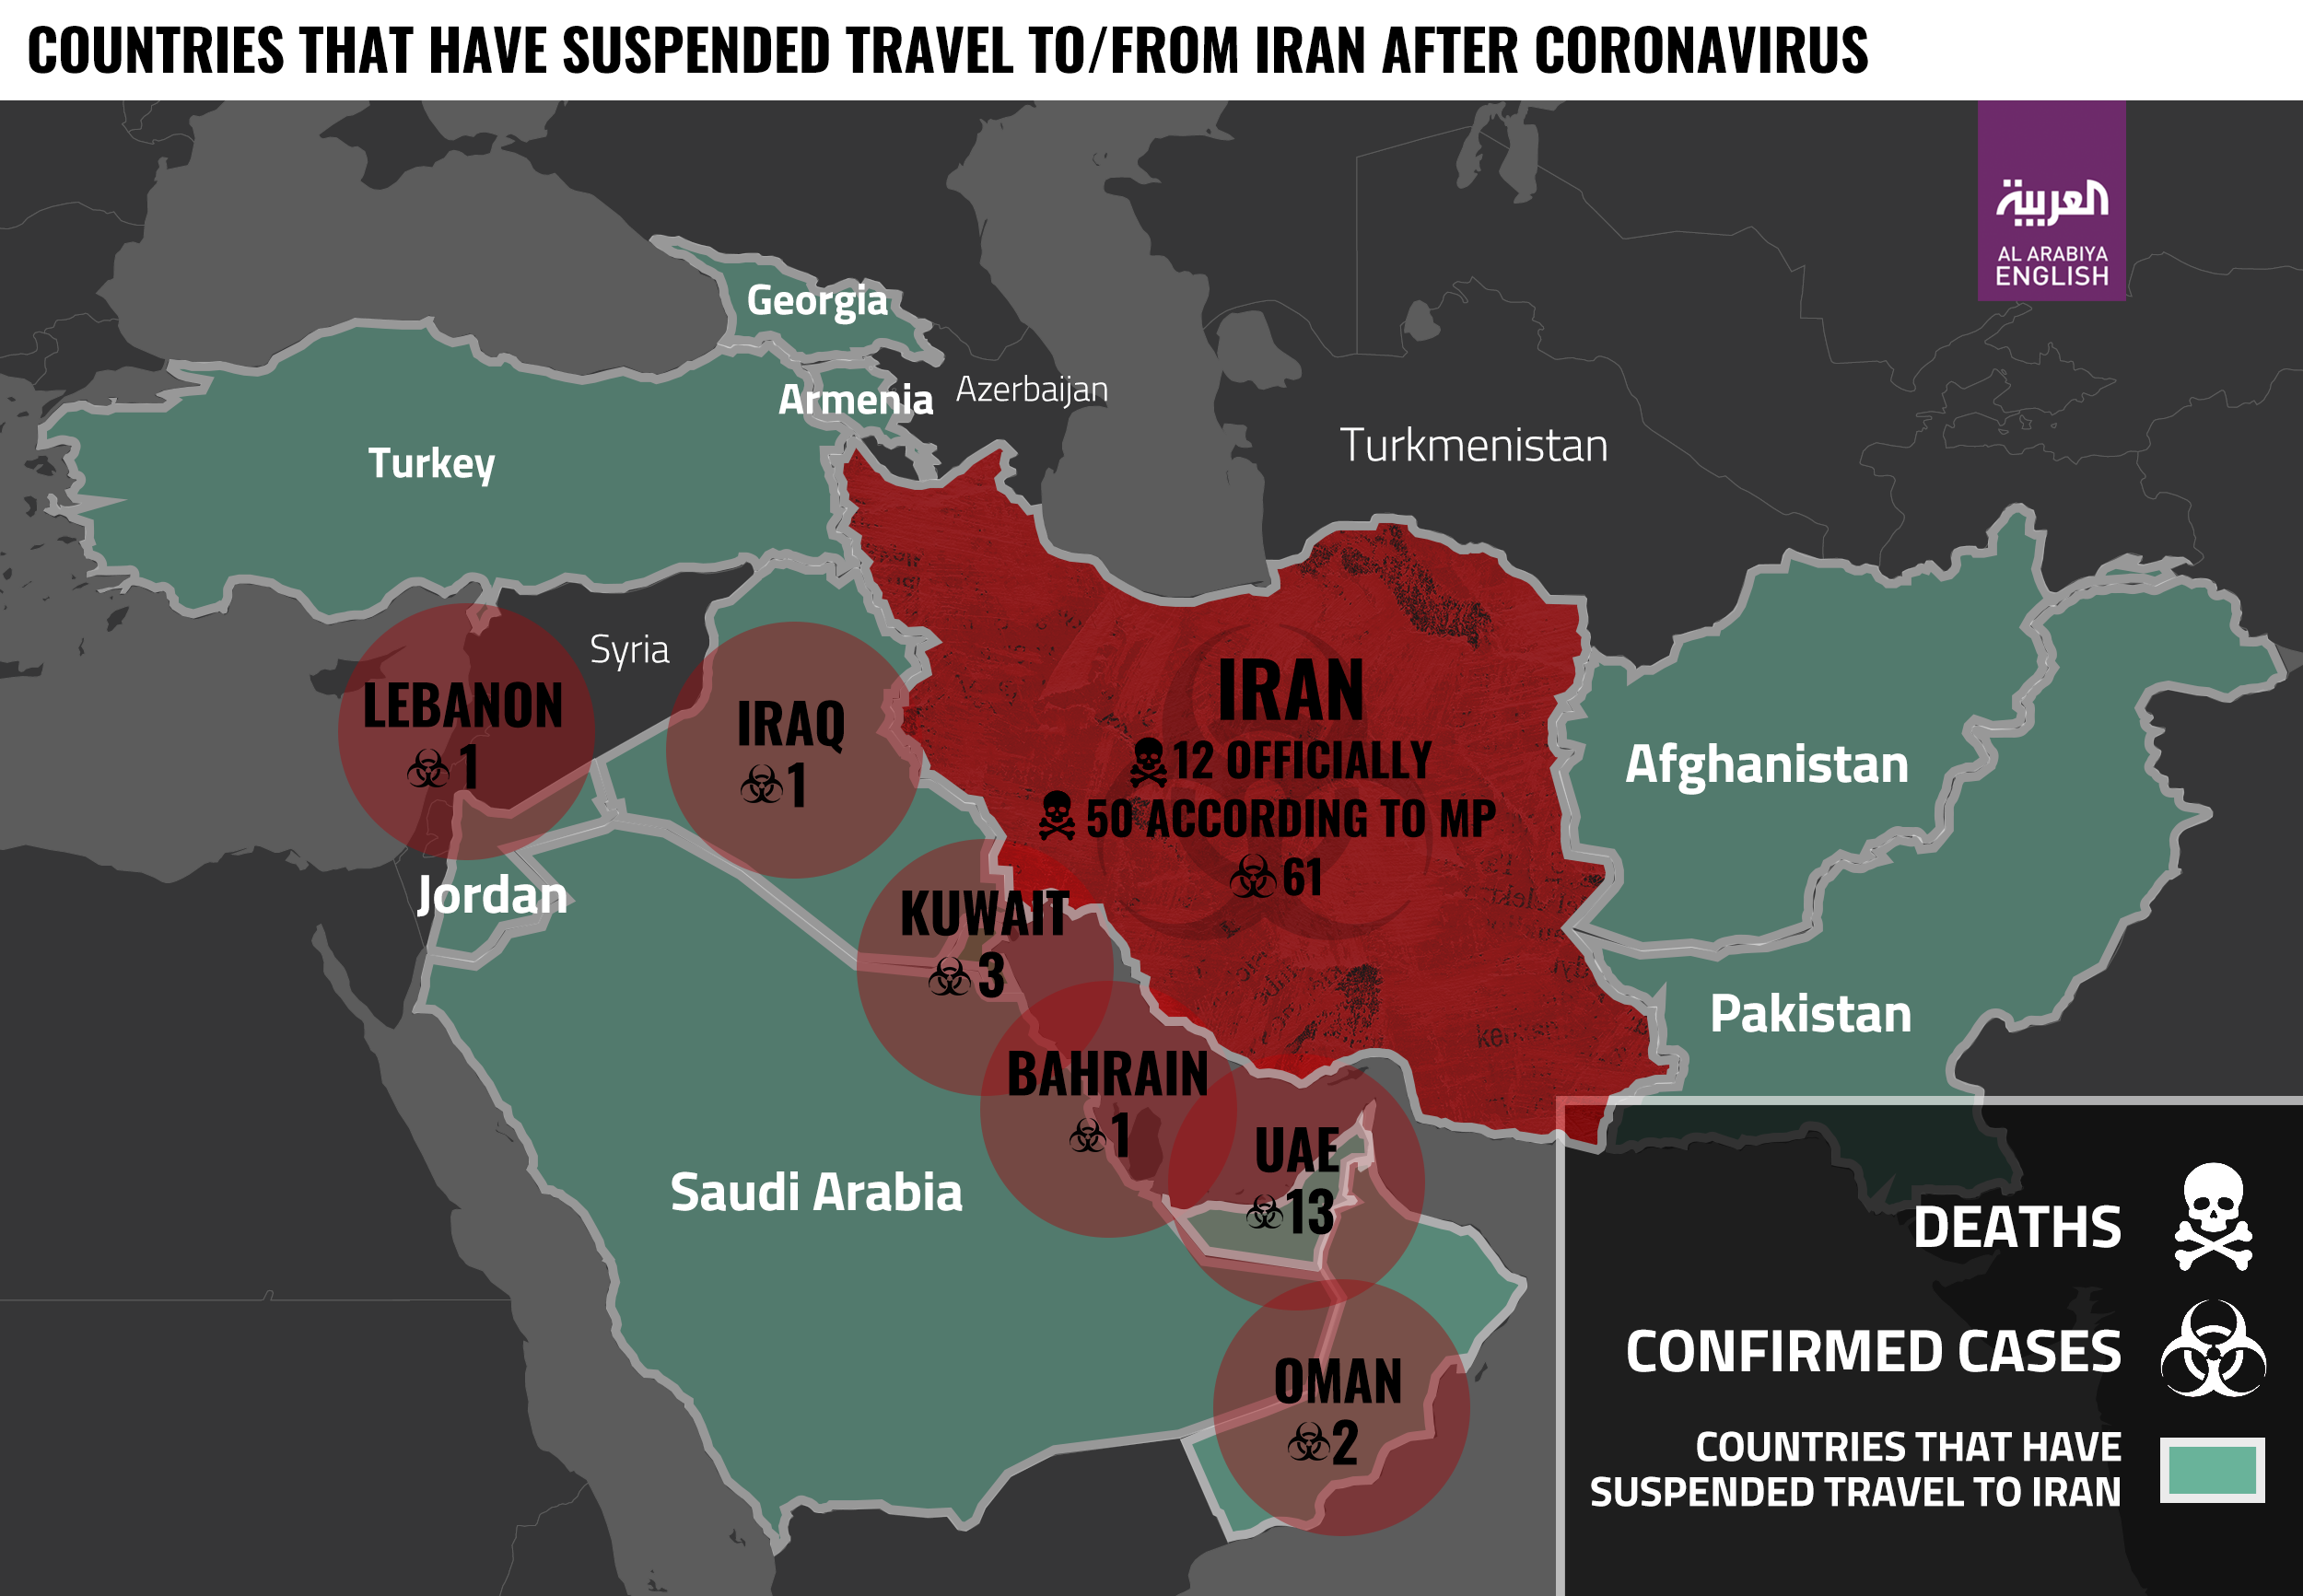 Countries that have suspended travel to/from Iran after Coronavirus mismanagement